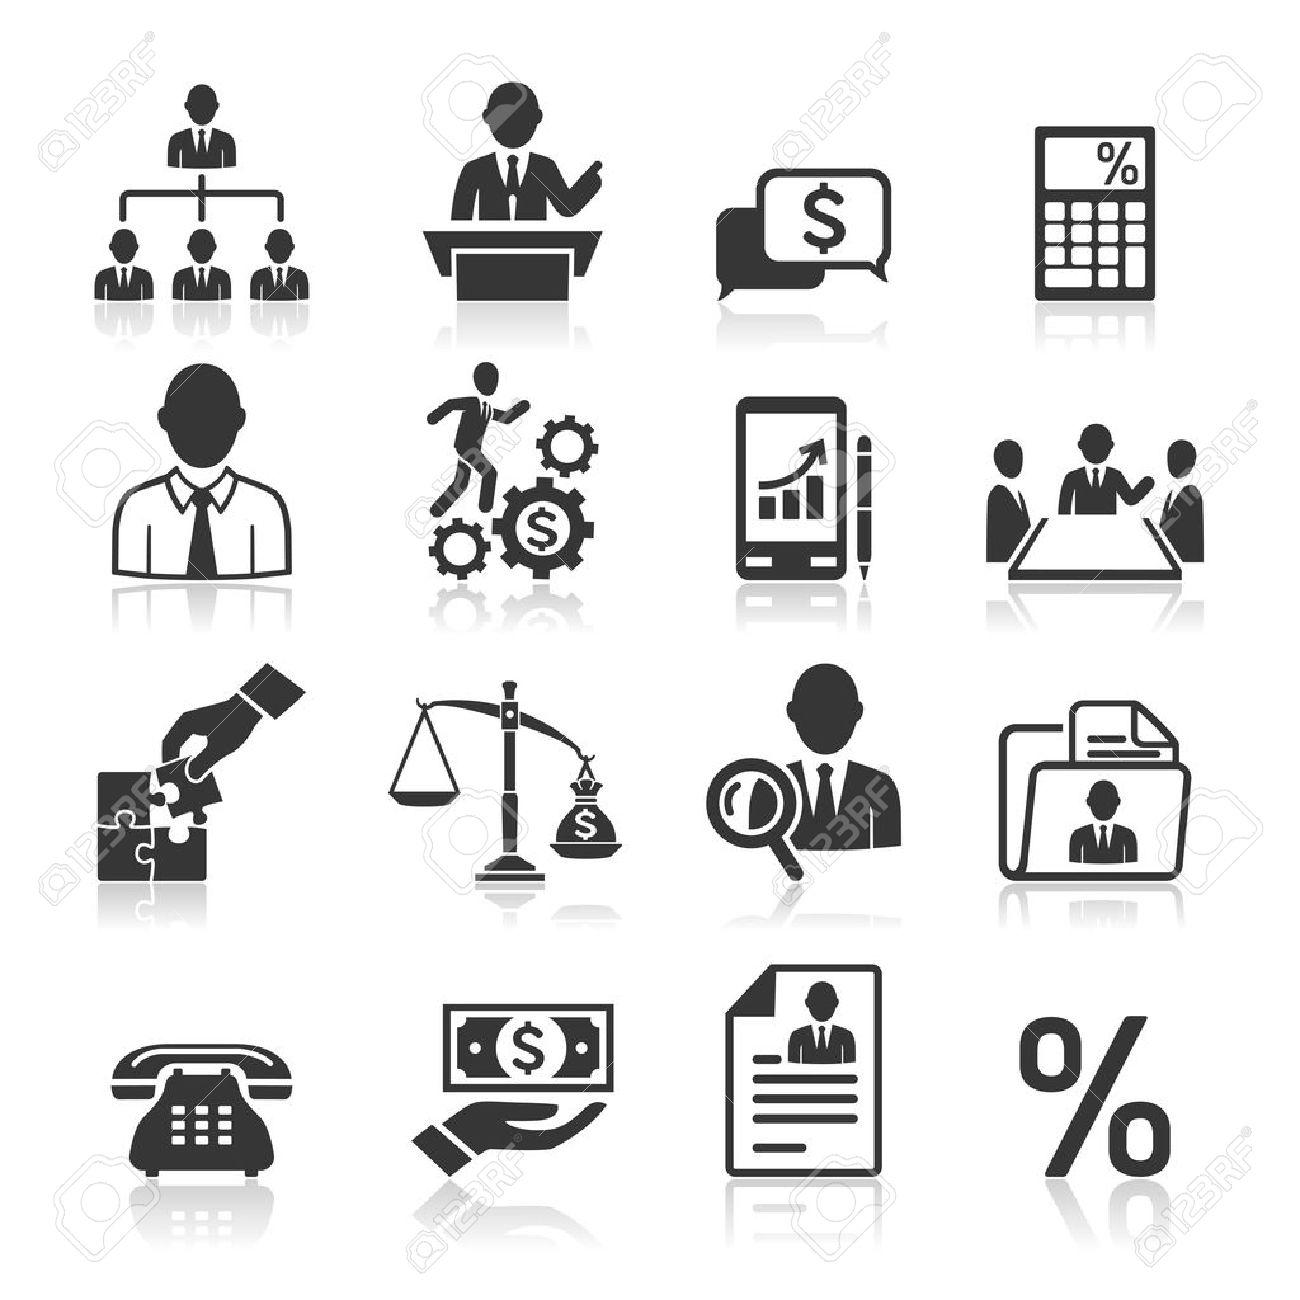 Human Resources Vector Human Resources Business